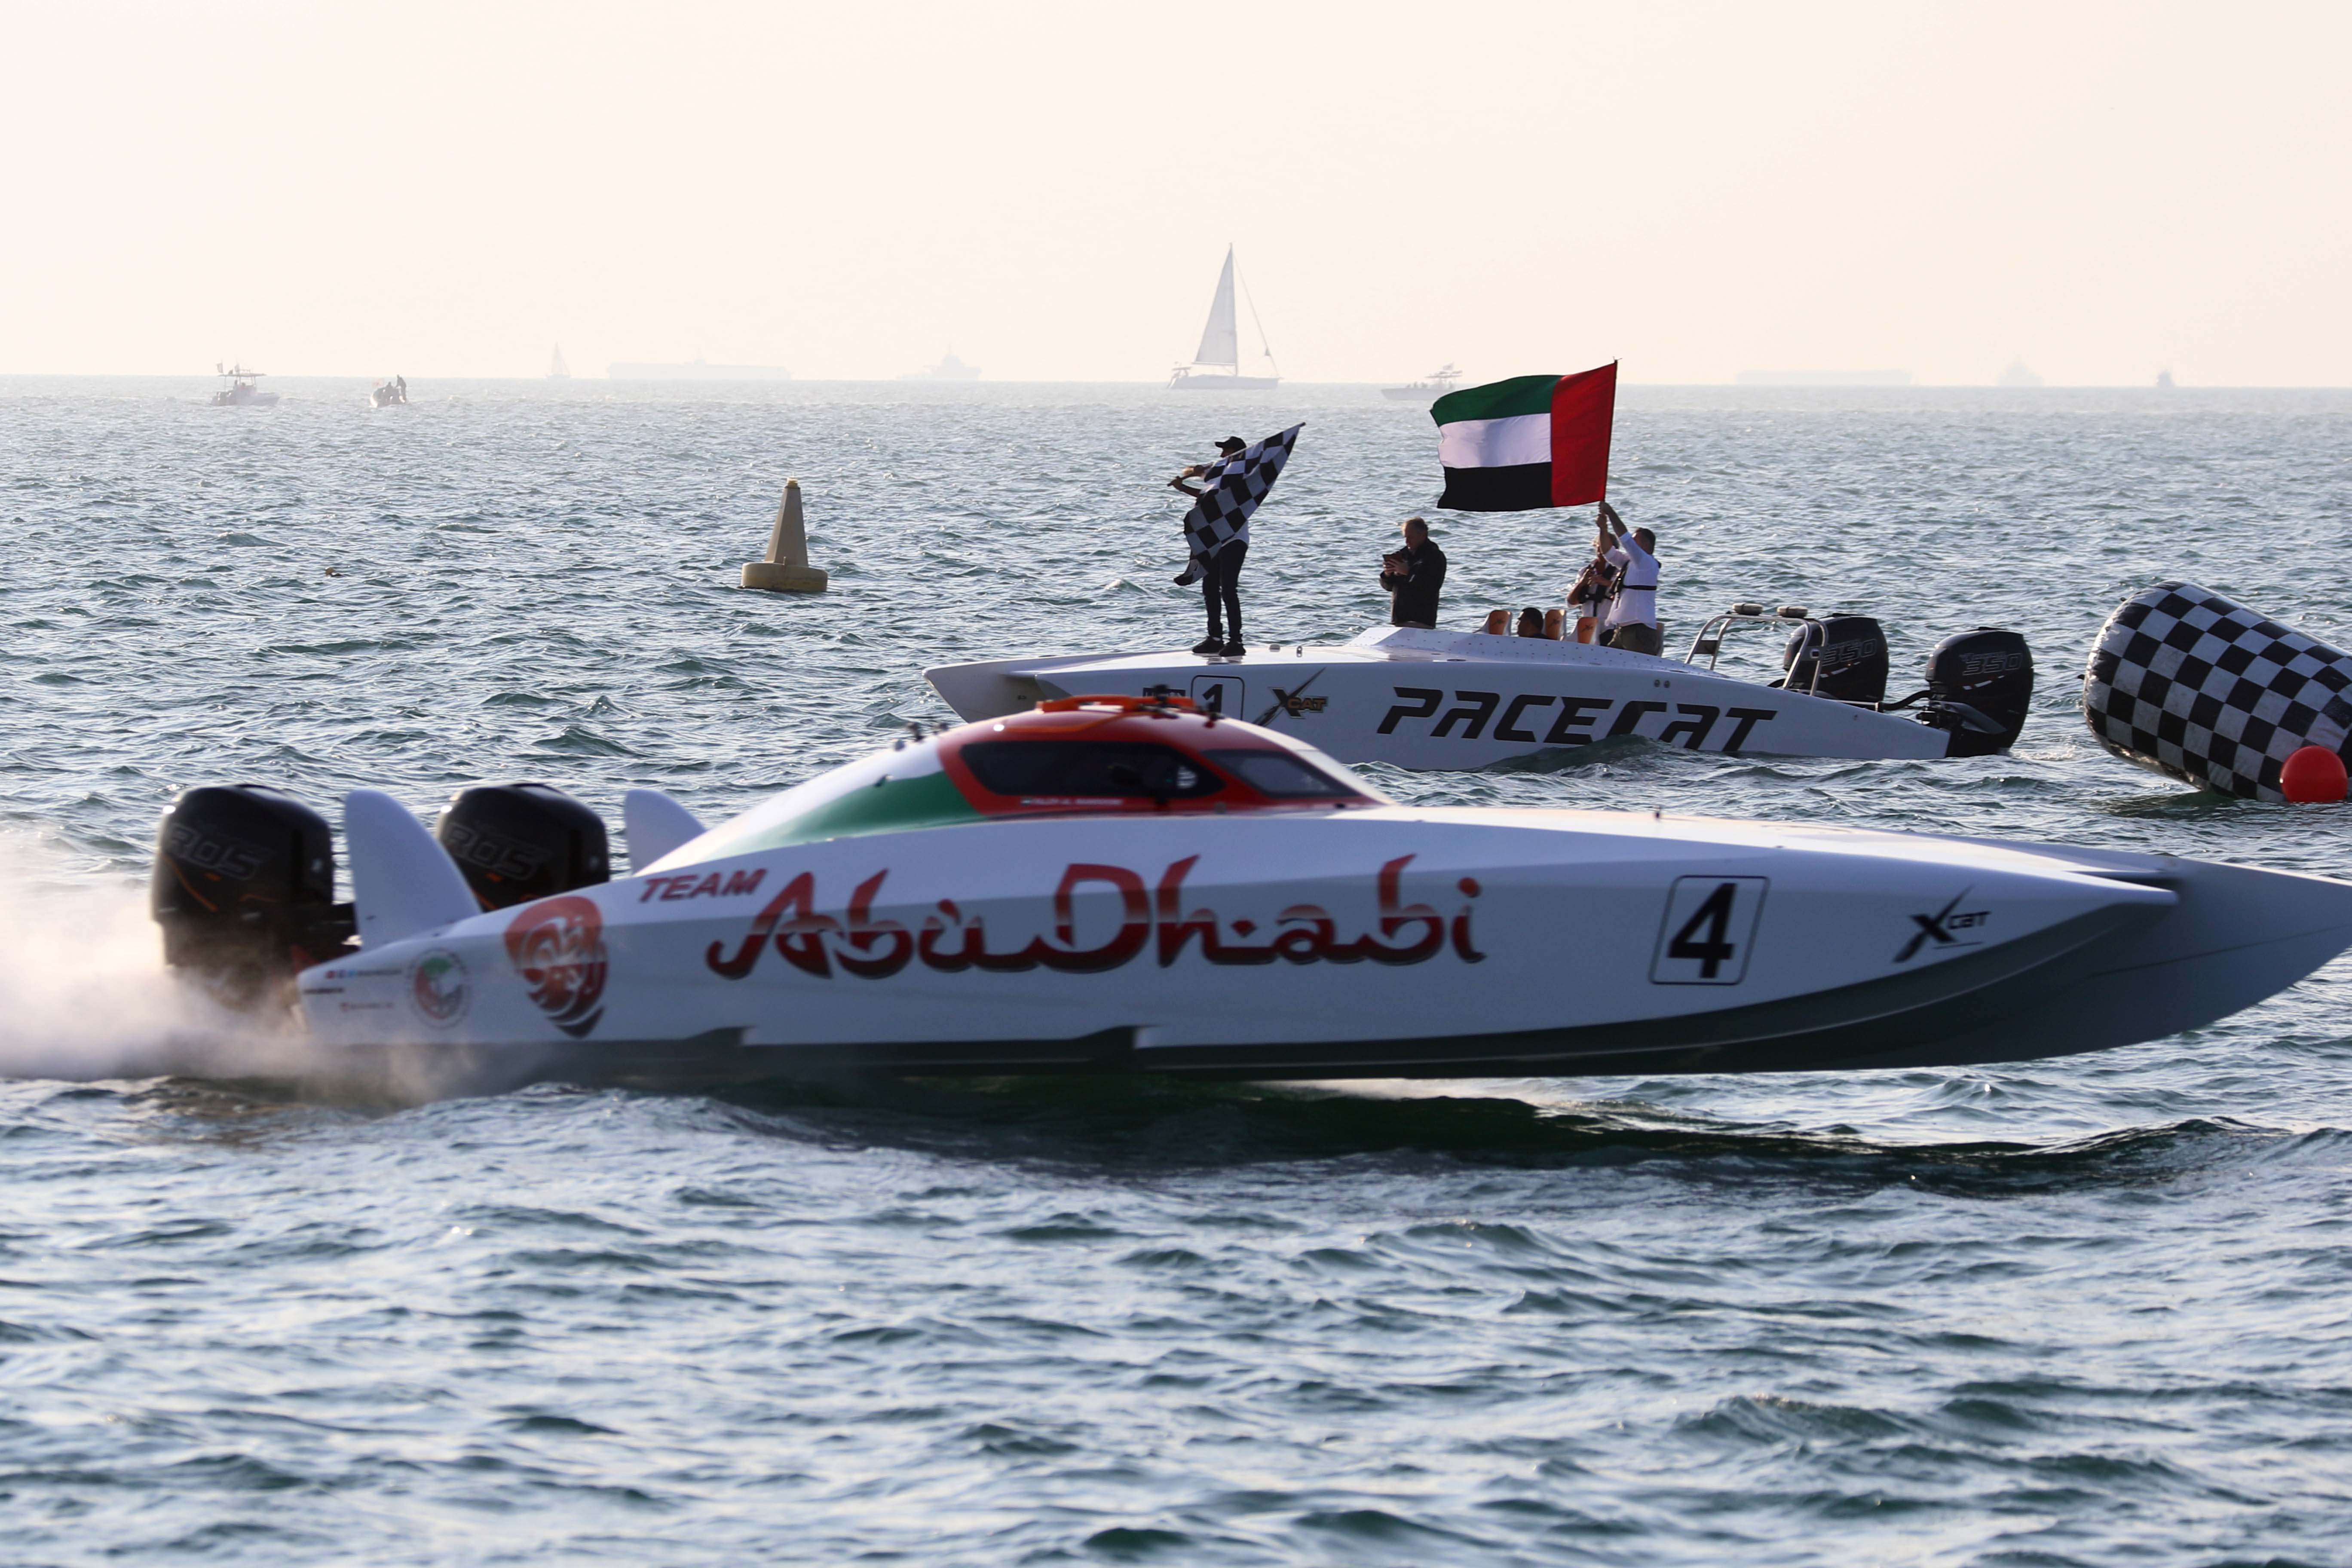 Abu Dhabi 4 wins the first race and leads the XCAT